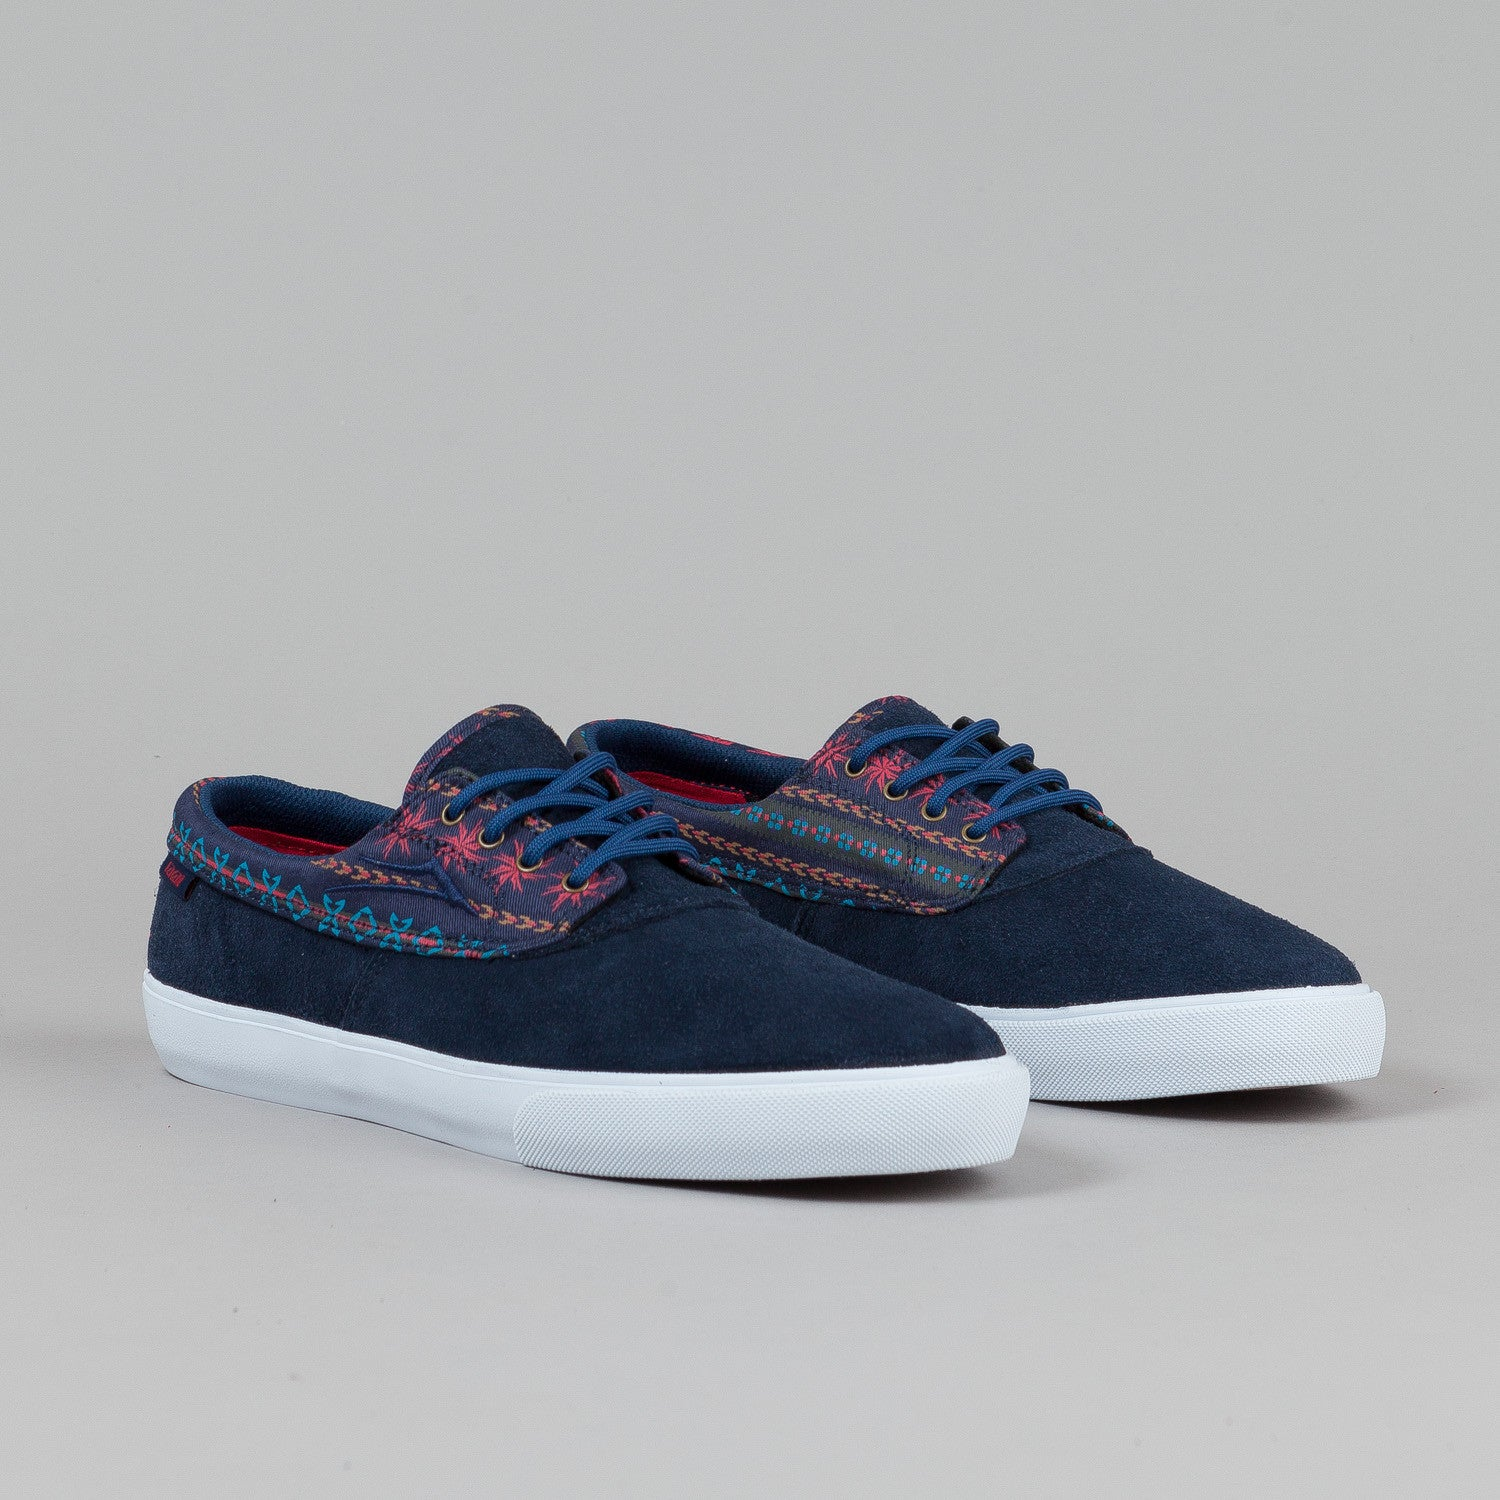 Lakai Camby Echelon Shoes Navy Suede